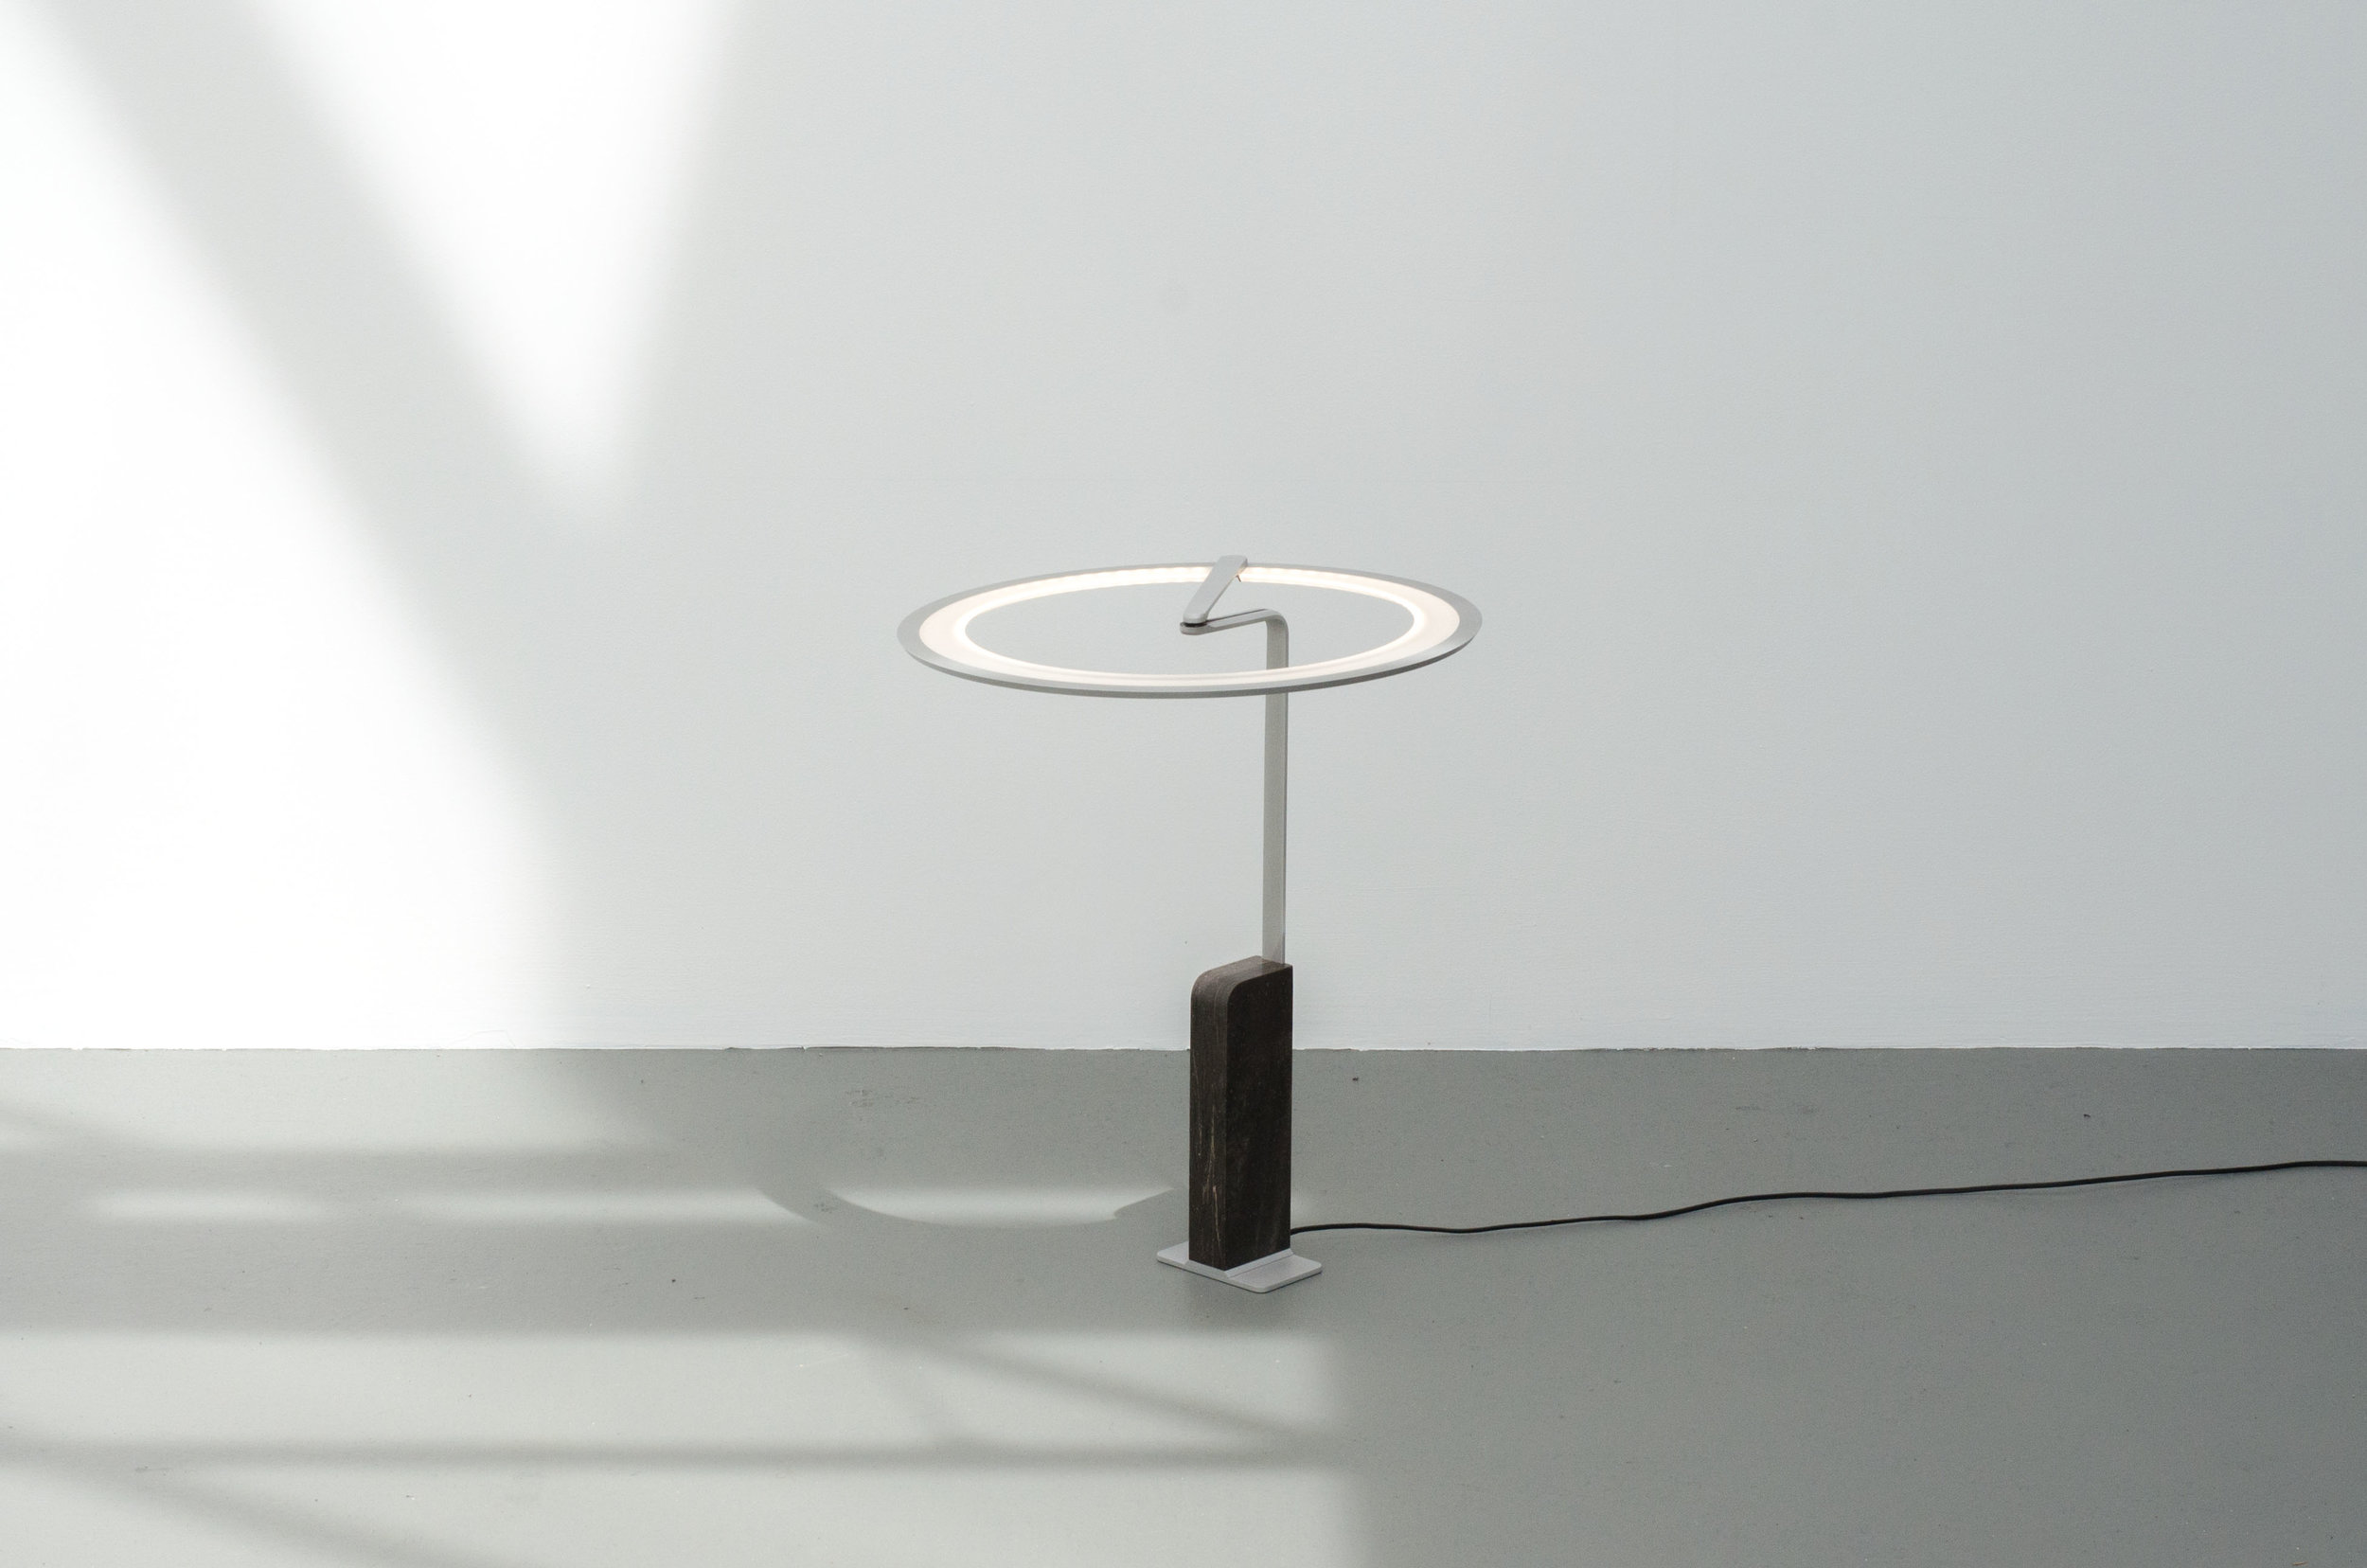 io Lamp. Josh Bruderer. Massey University.